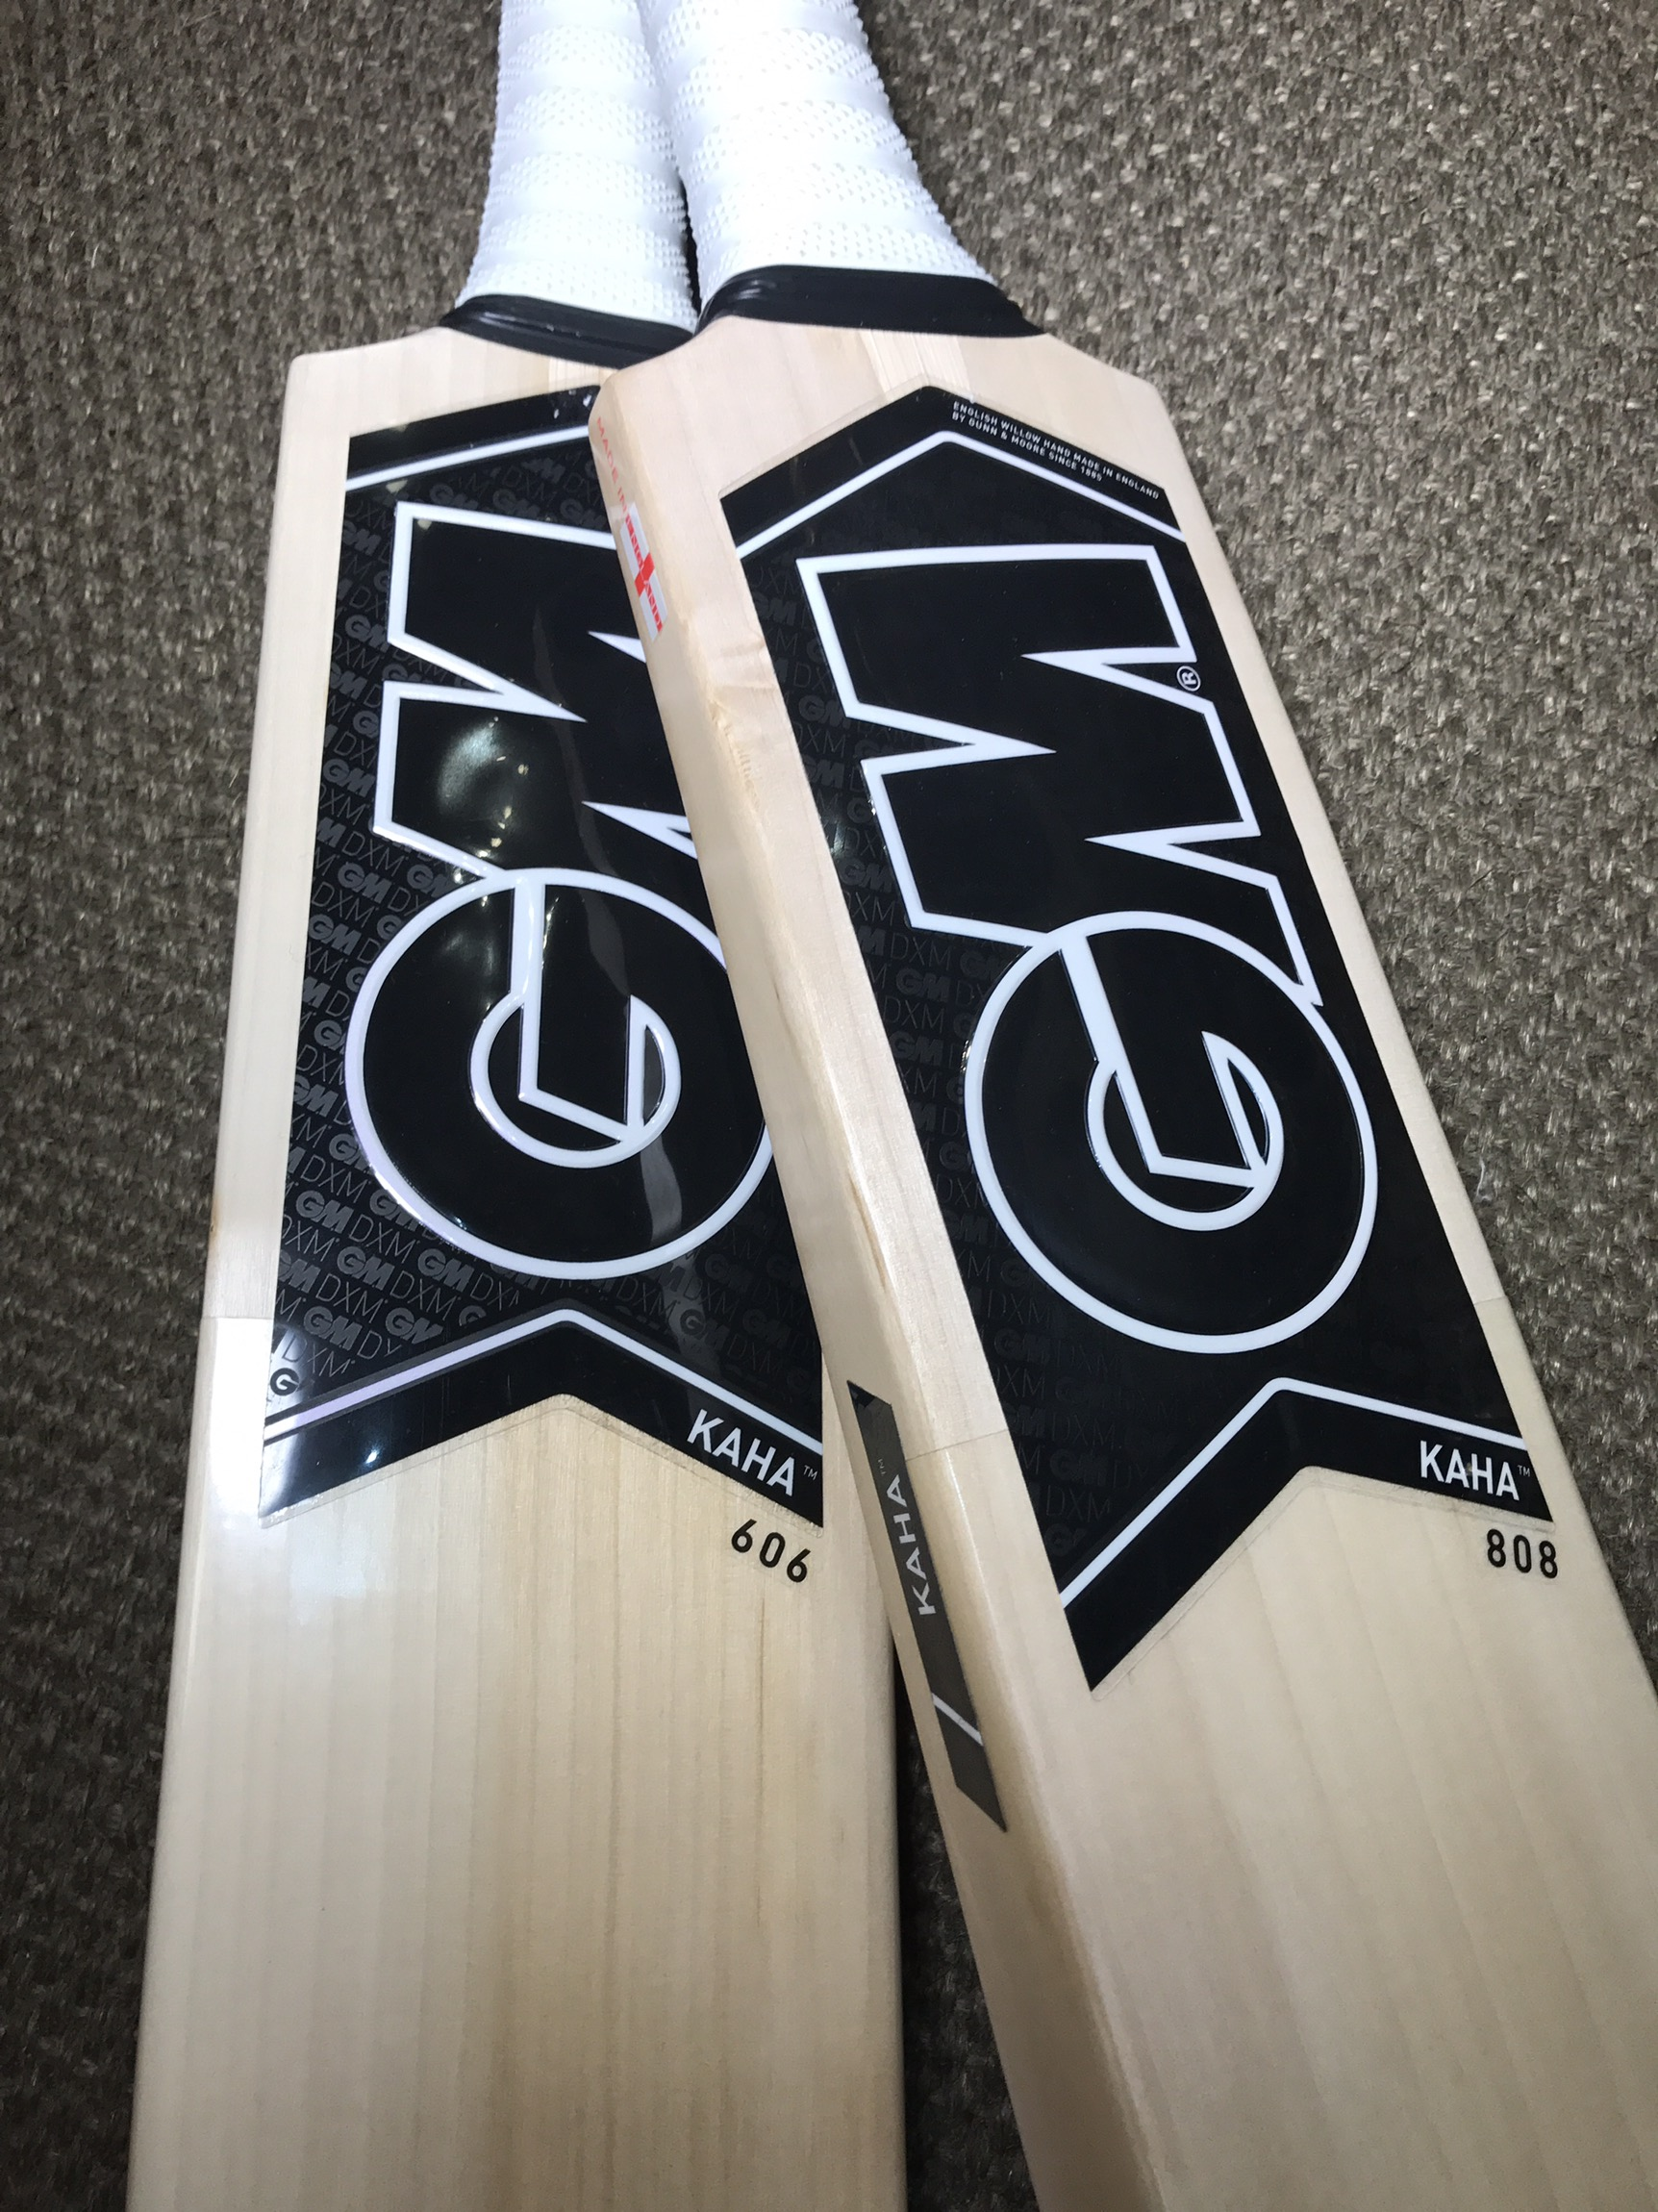 Gm kaha cricket bats are made from best quality english willow